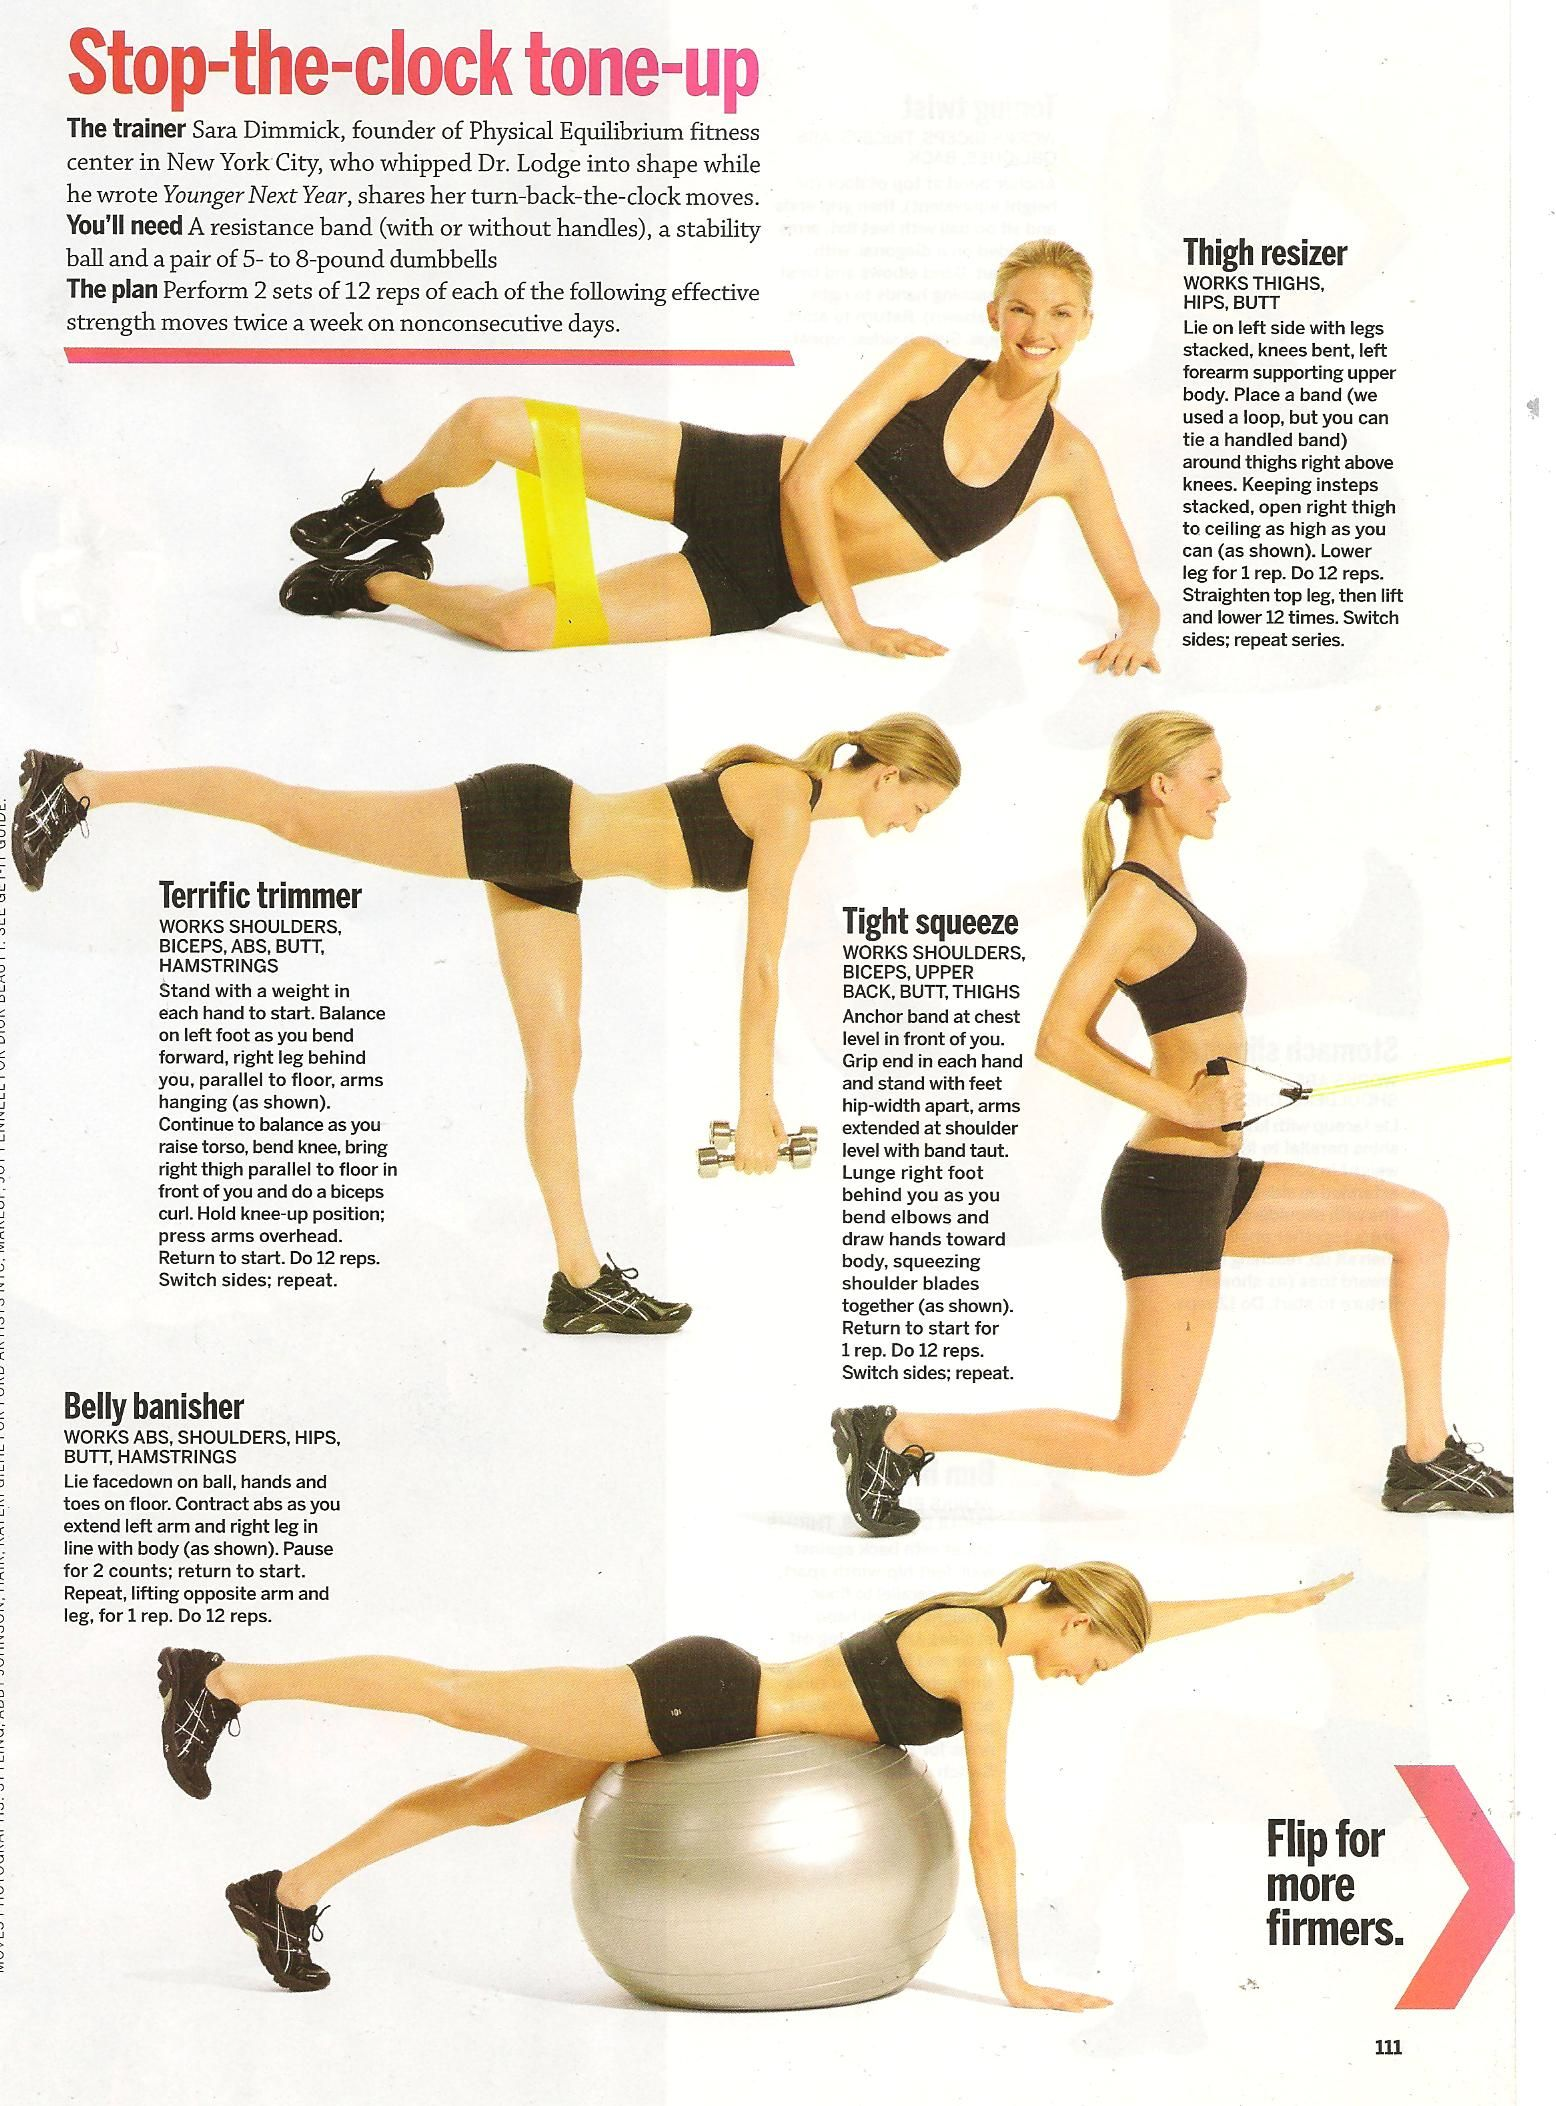 What Did We Learn This Month Selfmagazine With Ali Sweeney On The Cover Fitness Motivation Workout Ball Exercises